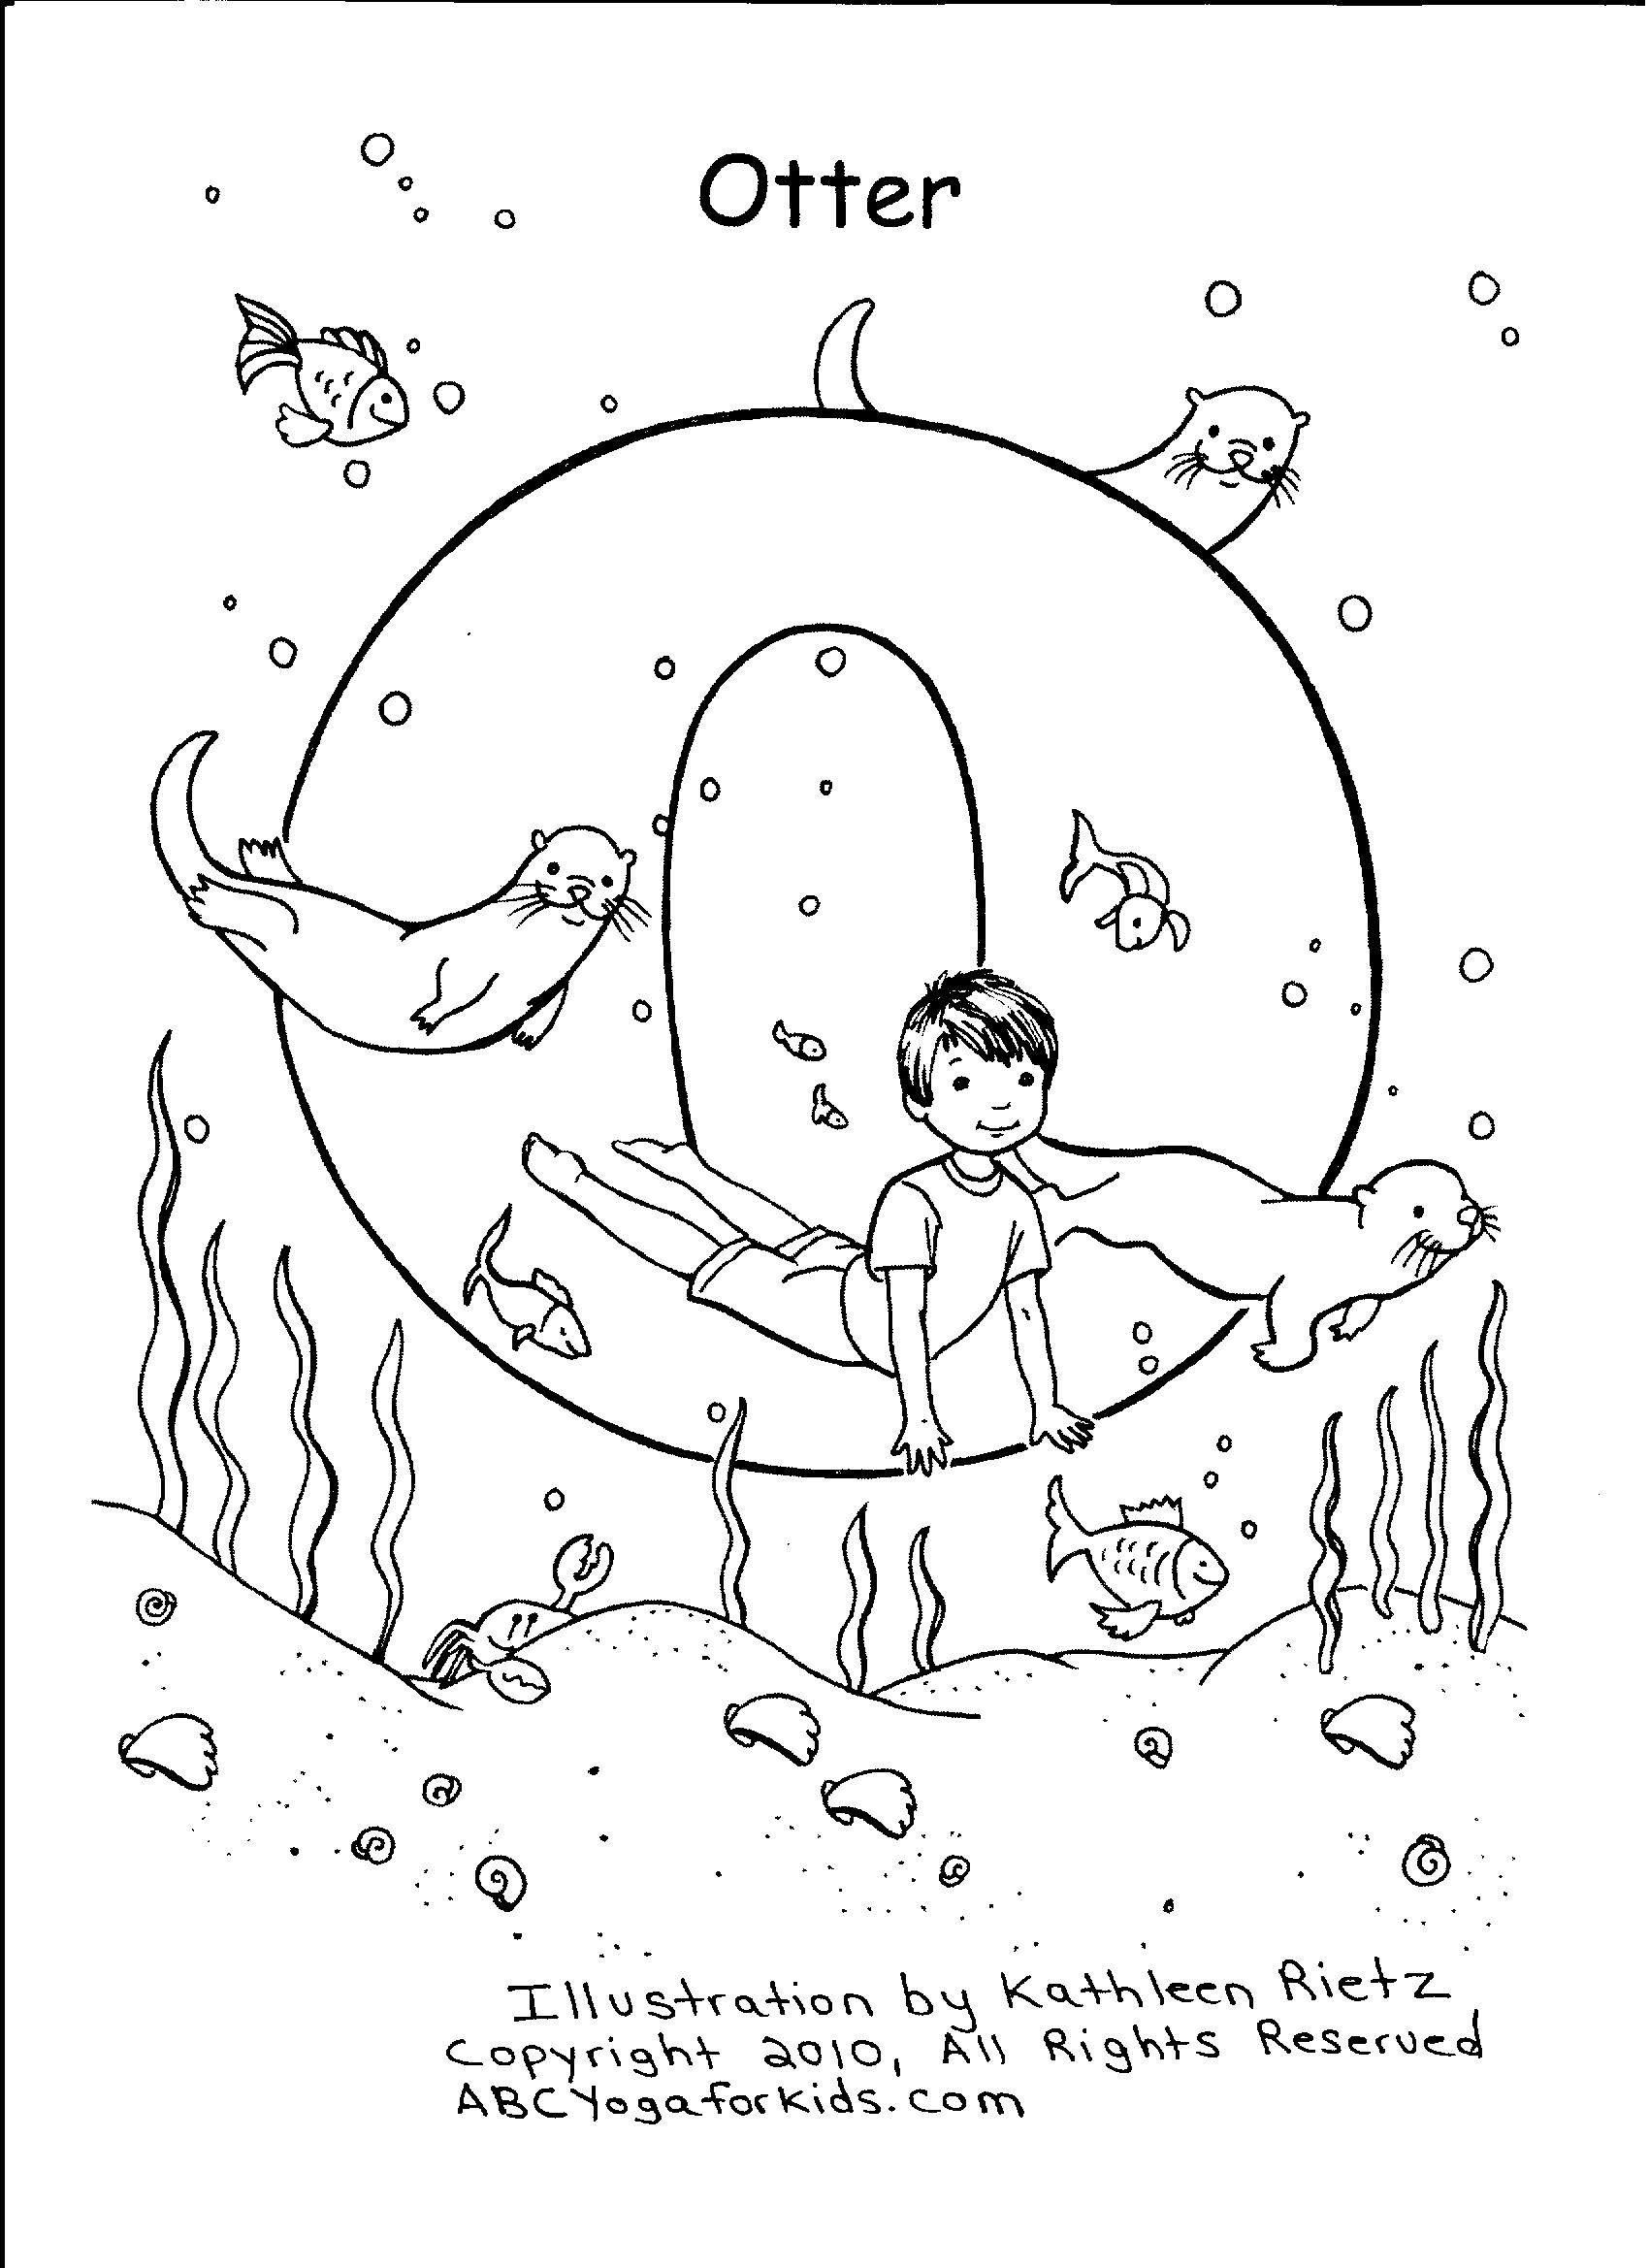 2017 Coloring Contest - The ABCs of Yoga for Kids